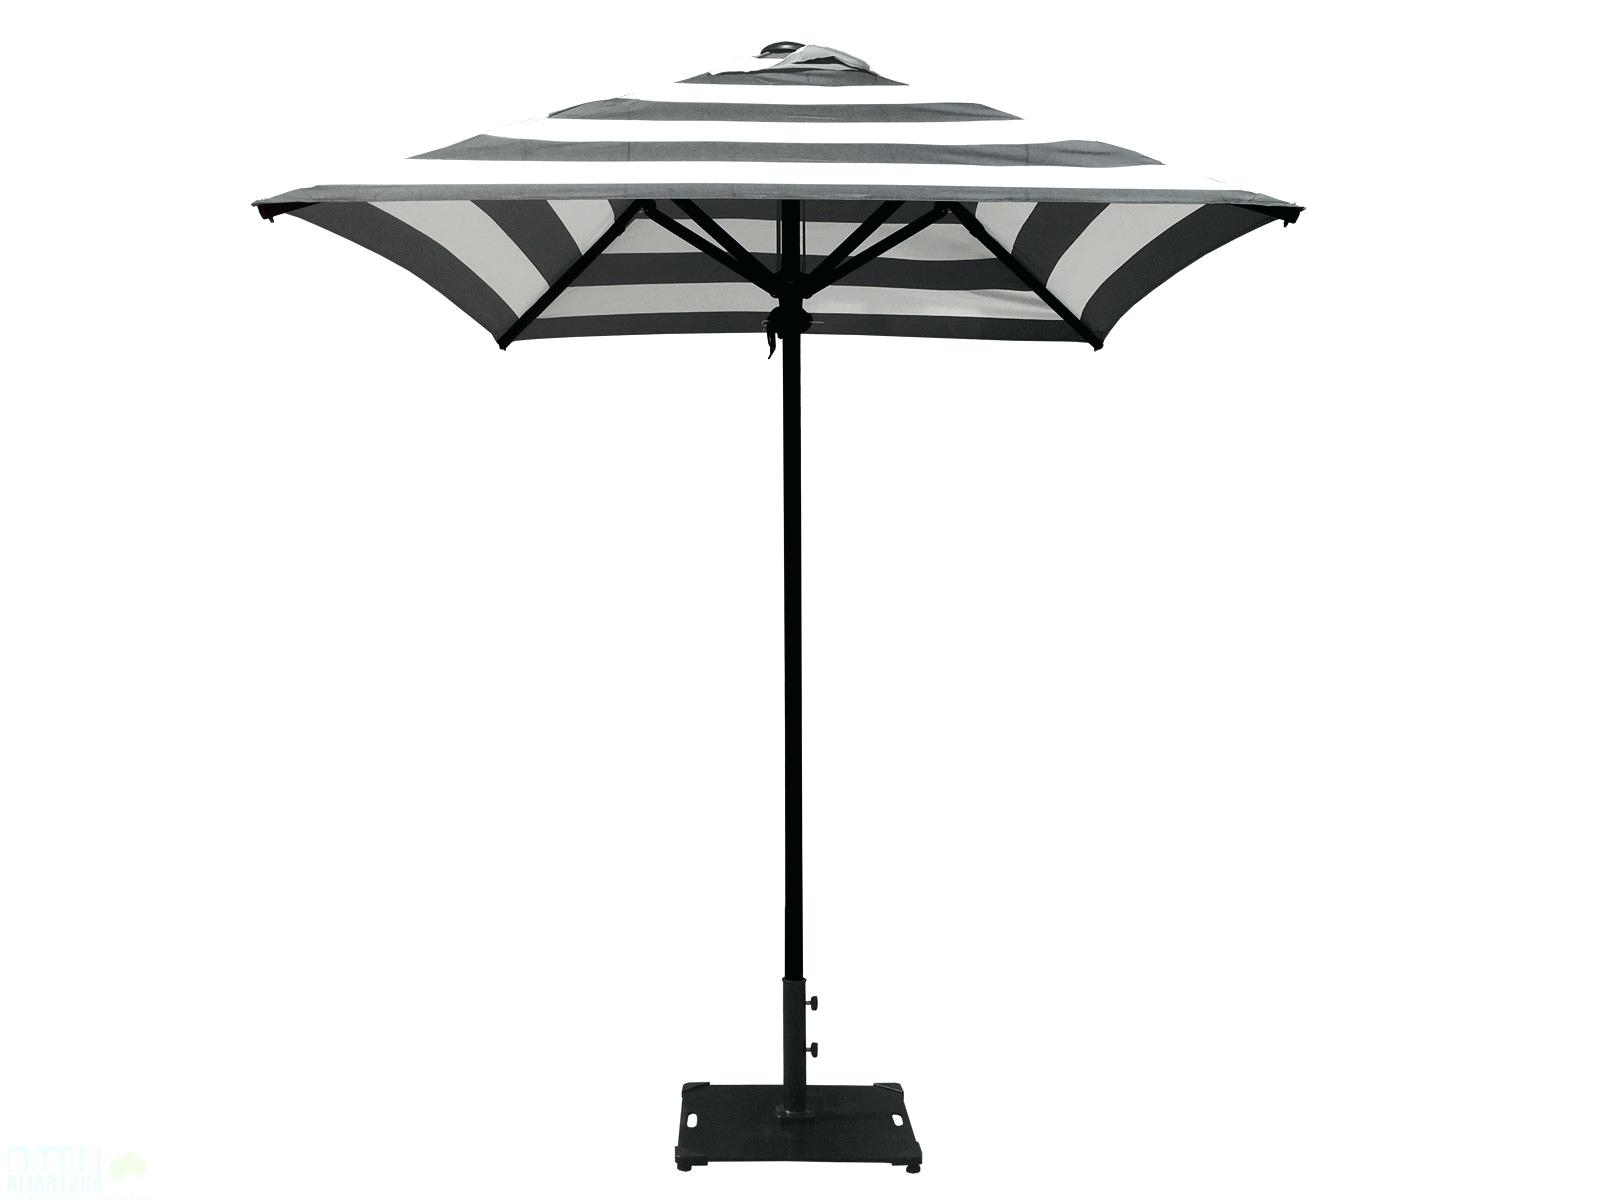 Black And White Striped Patio Umbrellas With Regard To Favorite Striped Umbrella Beach Resort Spa Replacement Canopy Pink Patio (View 4 of 20)